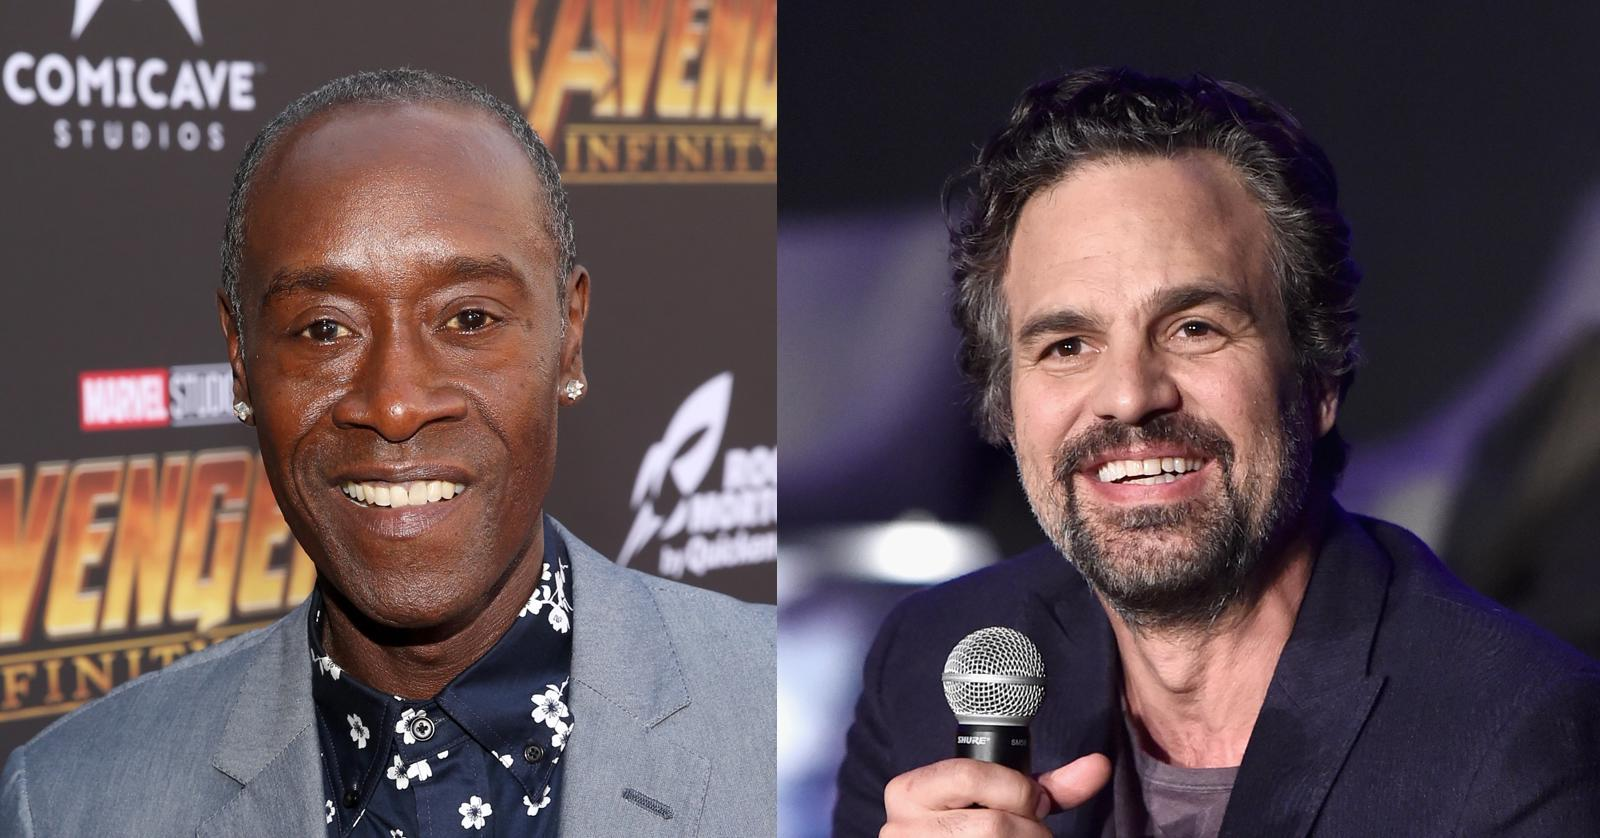 don-cheadle-mark-ruffalo-zero-hour-1562010388170.jpg